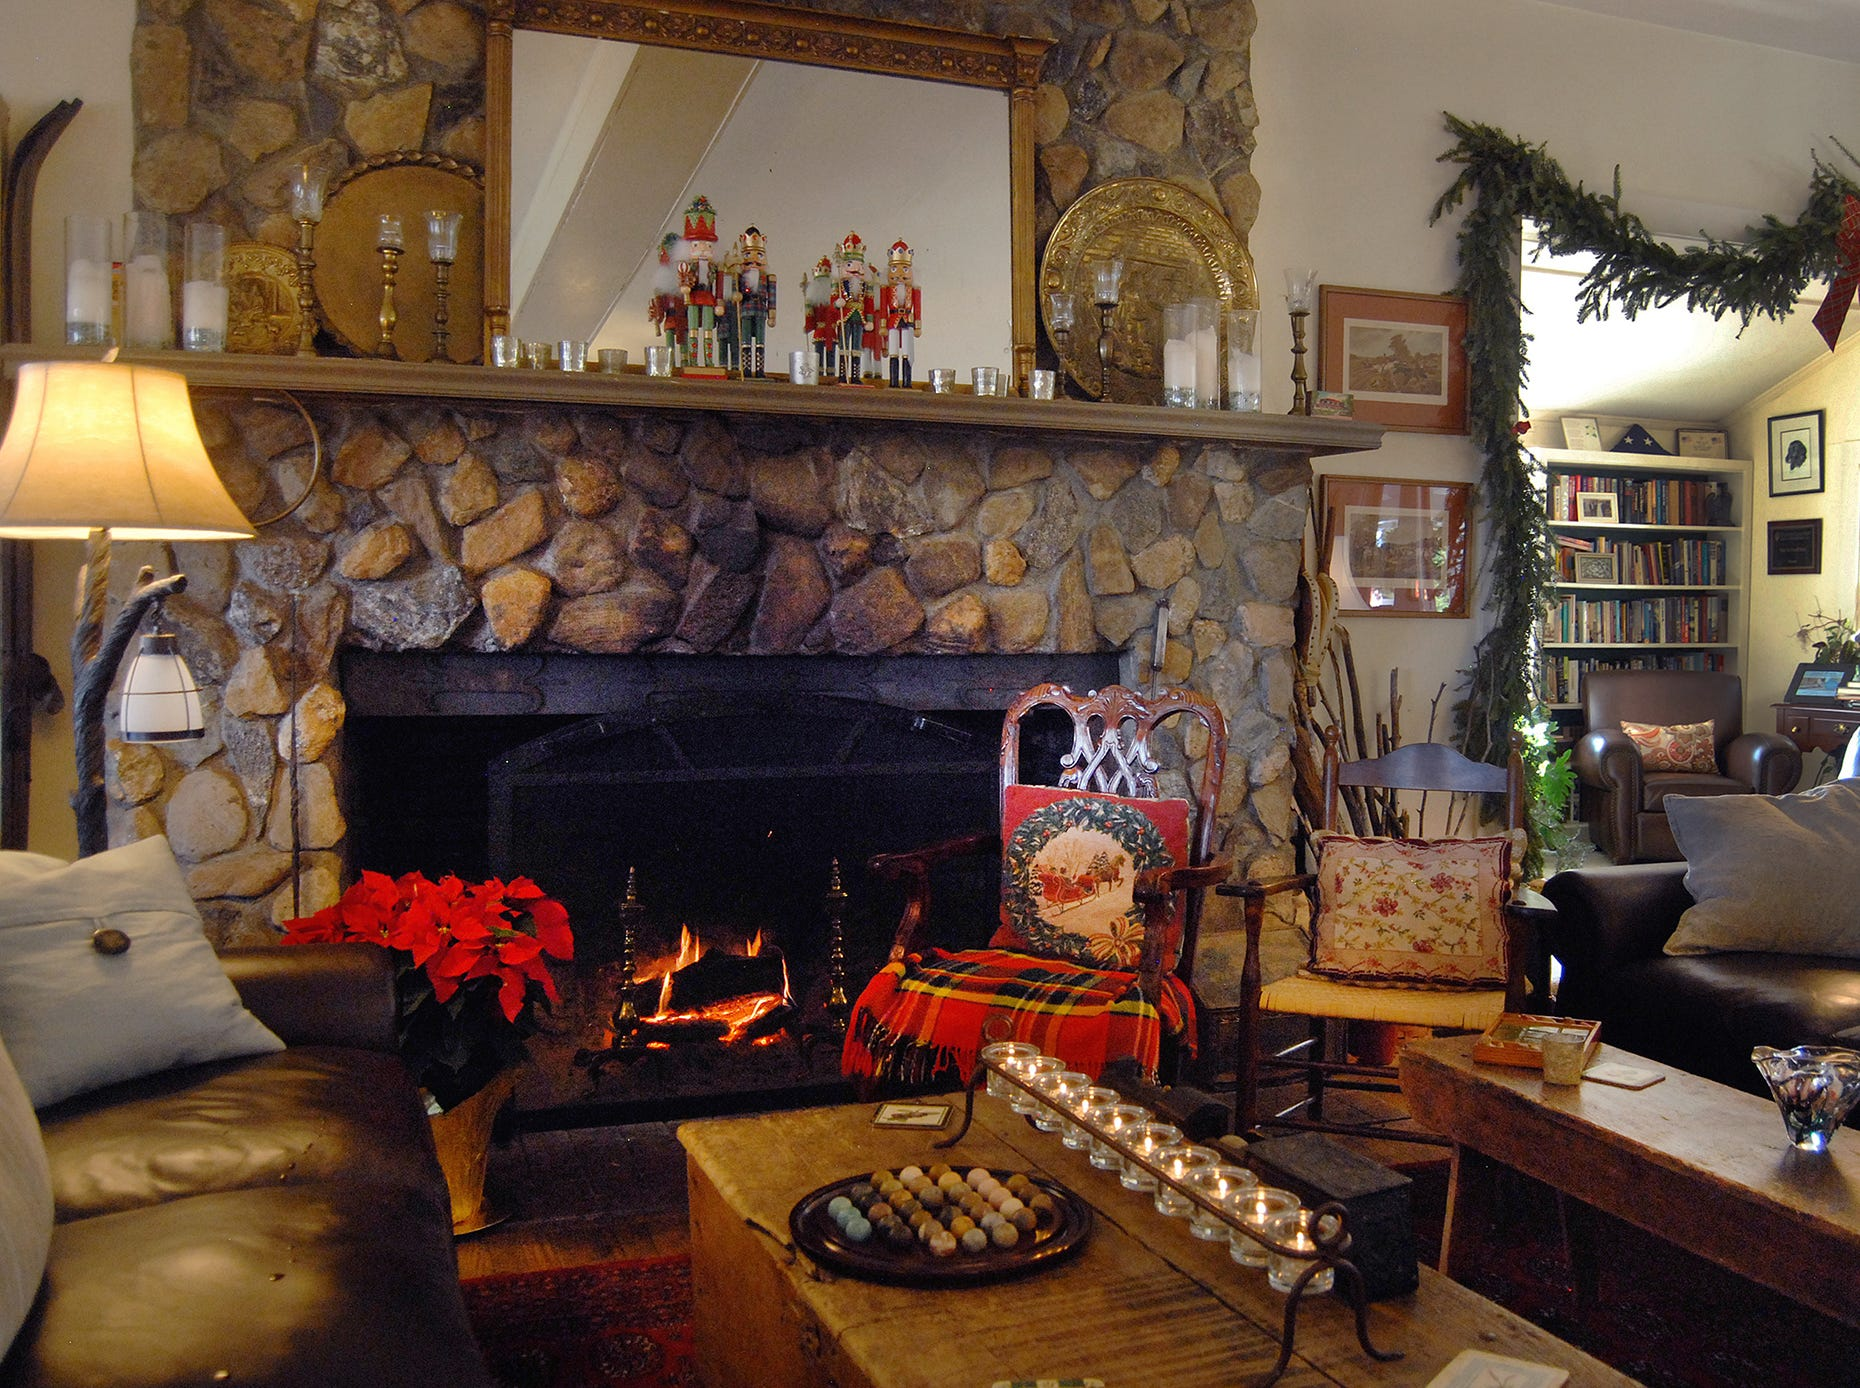 The inn's main room is tastefully decorated for Christmas.